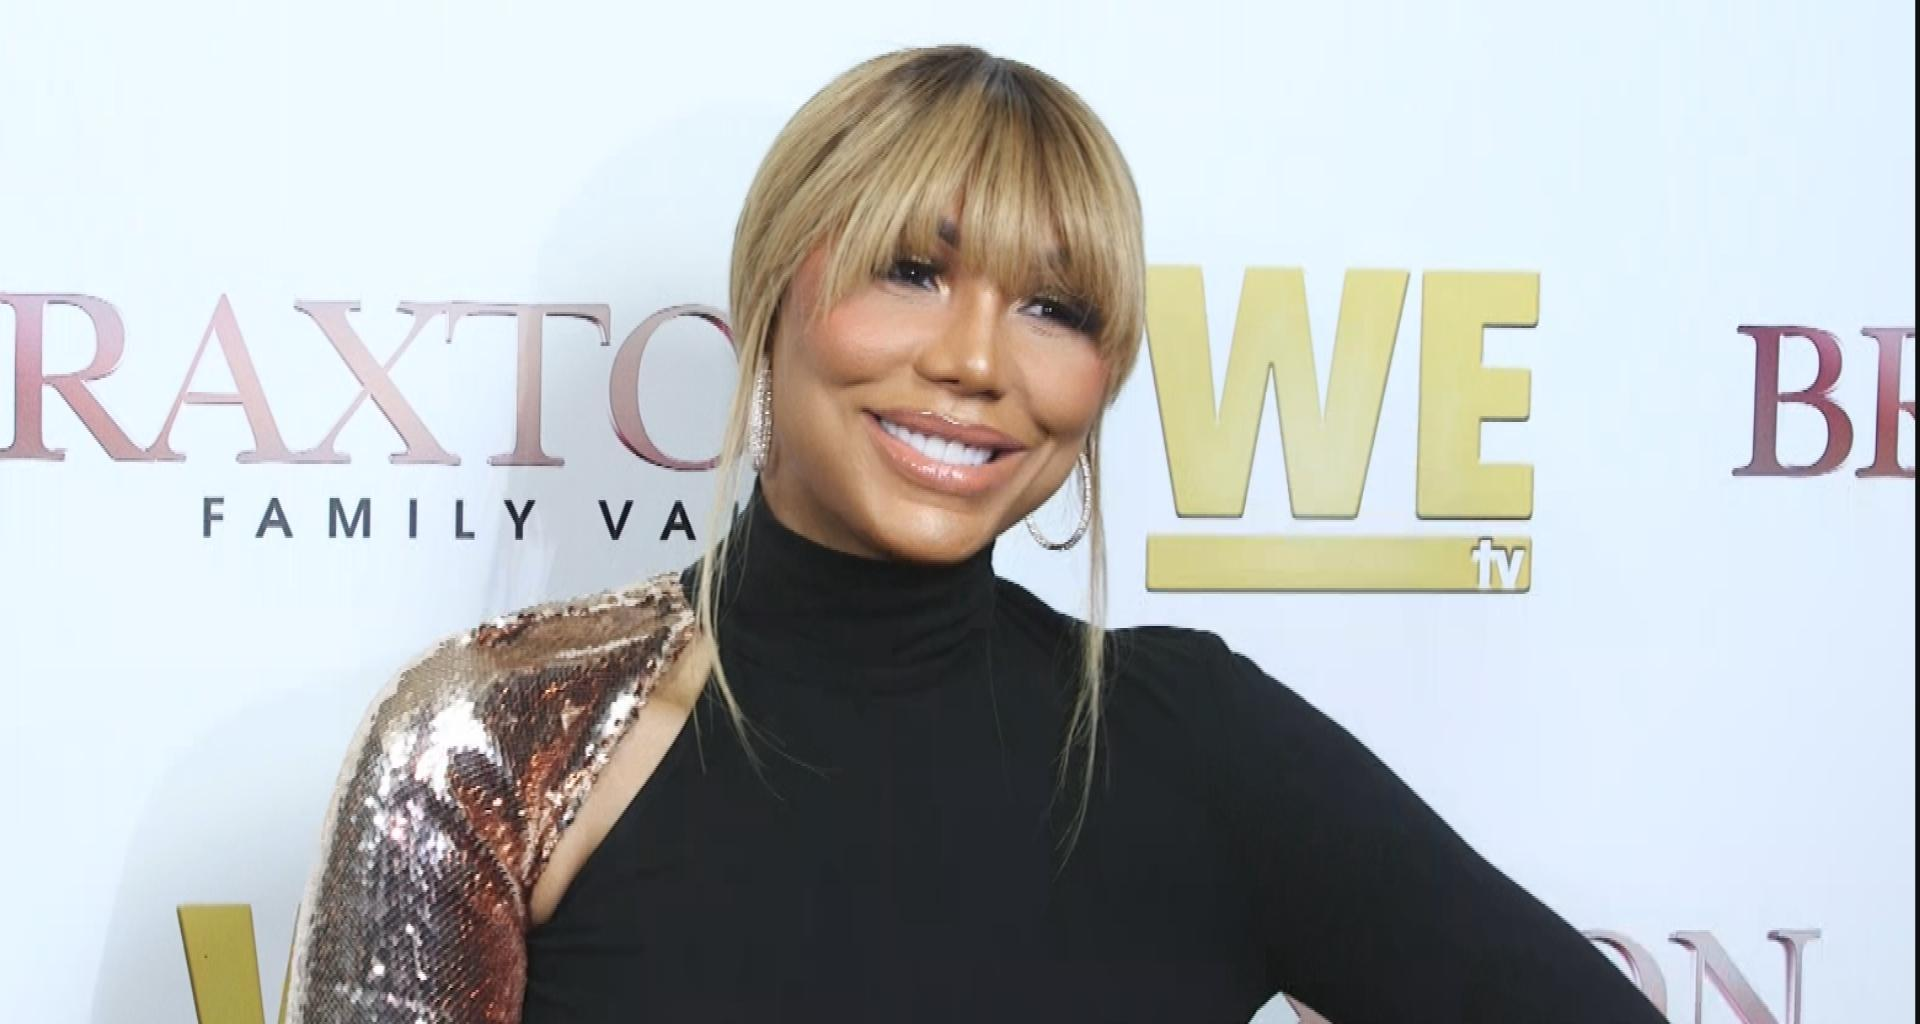 Tamar Braxton Shares 'Logan's Ride' For Her Boy's Birthday - Watch The Exciting Videos That Made Fans' Day